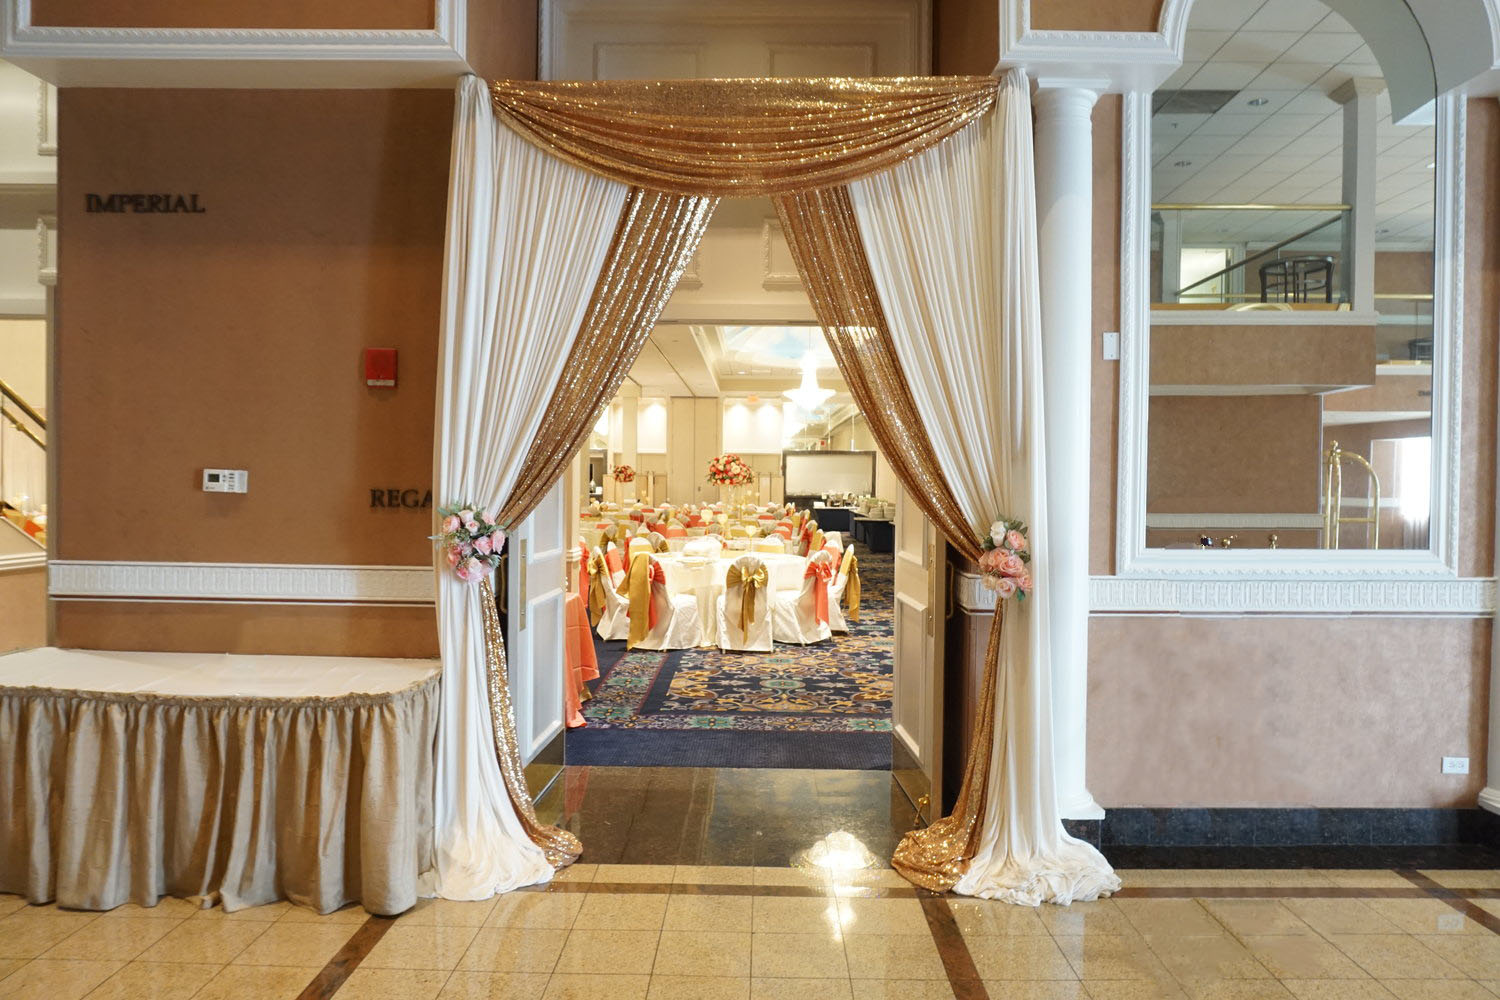 Off White and Gold Sequin Entrance Drape With Floral Accents.jpg